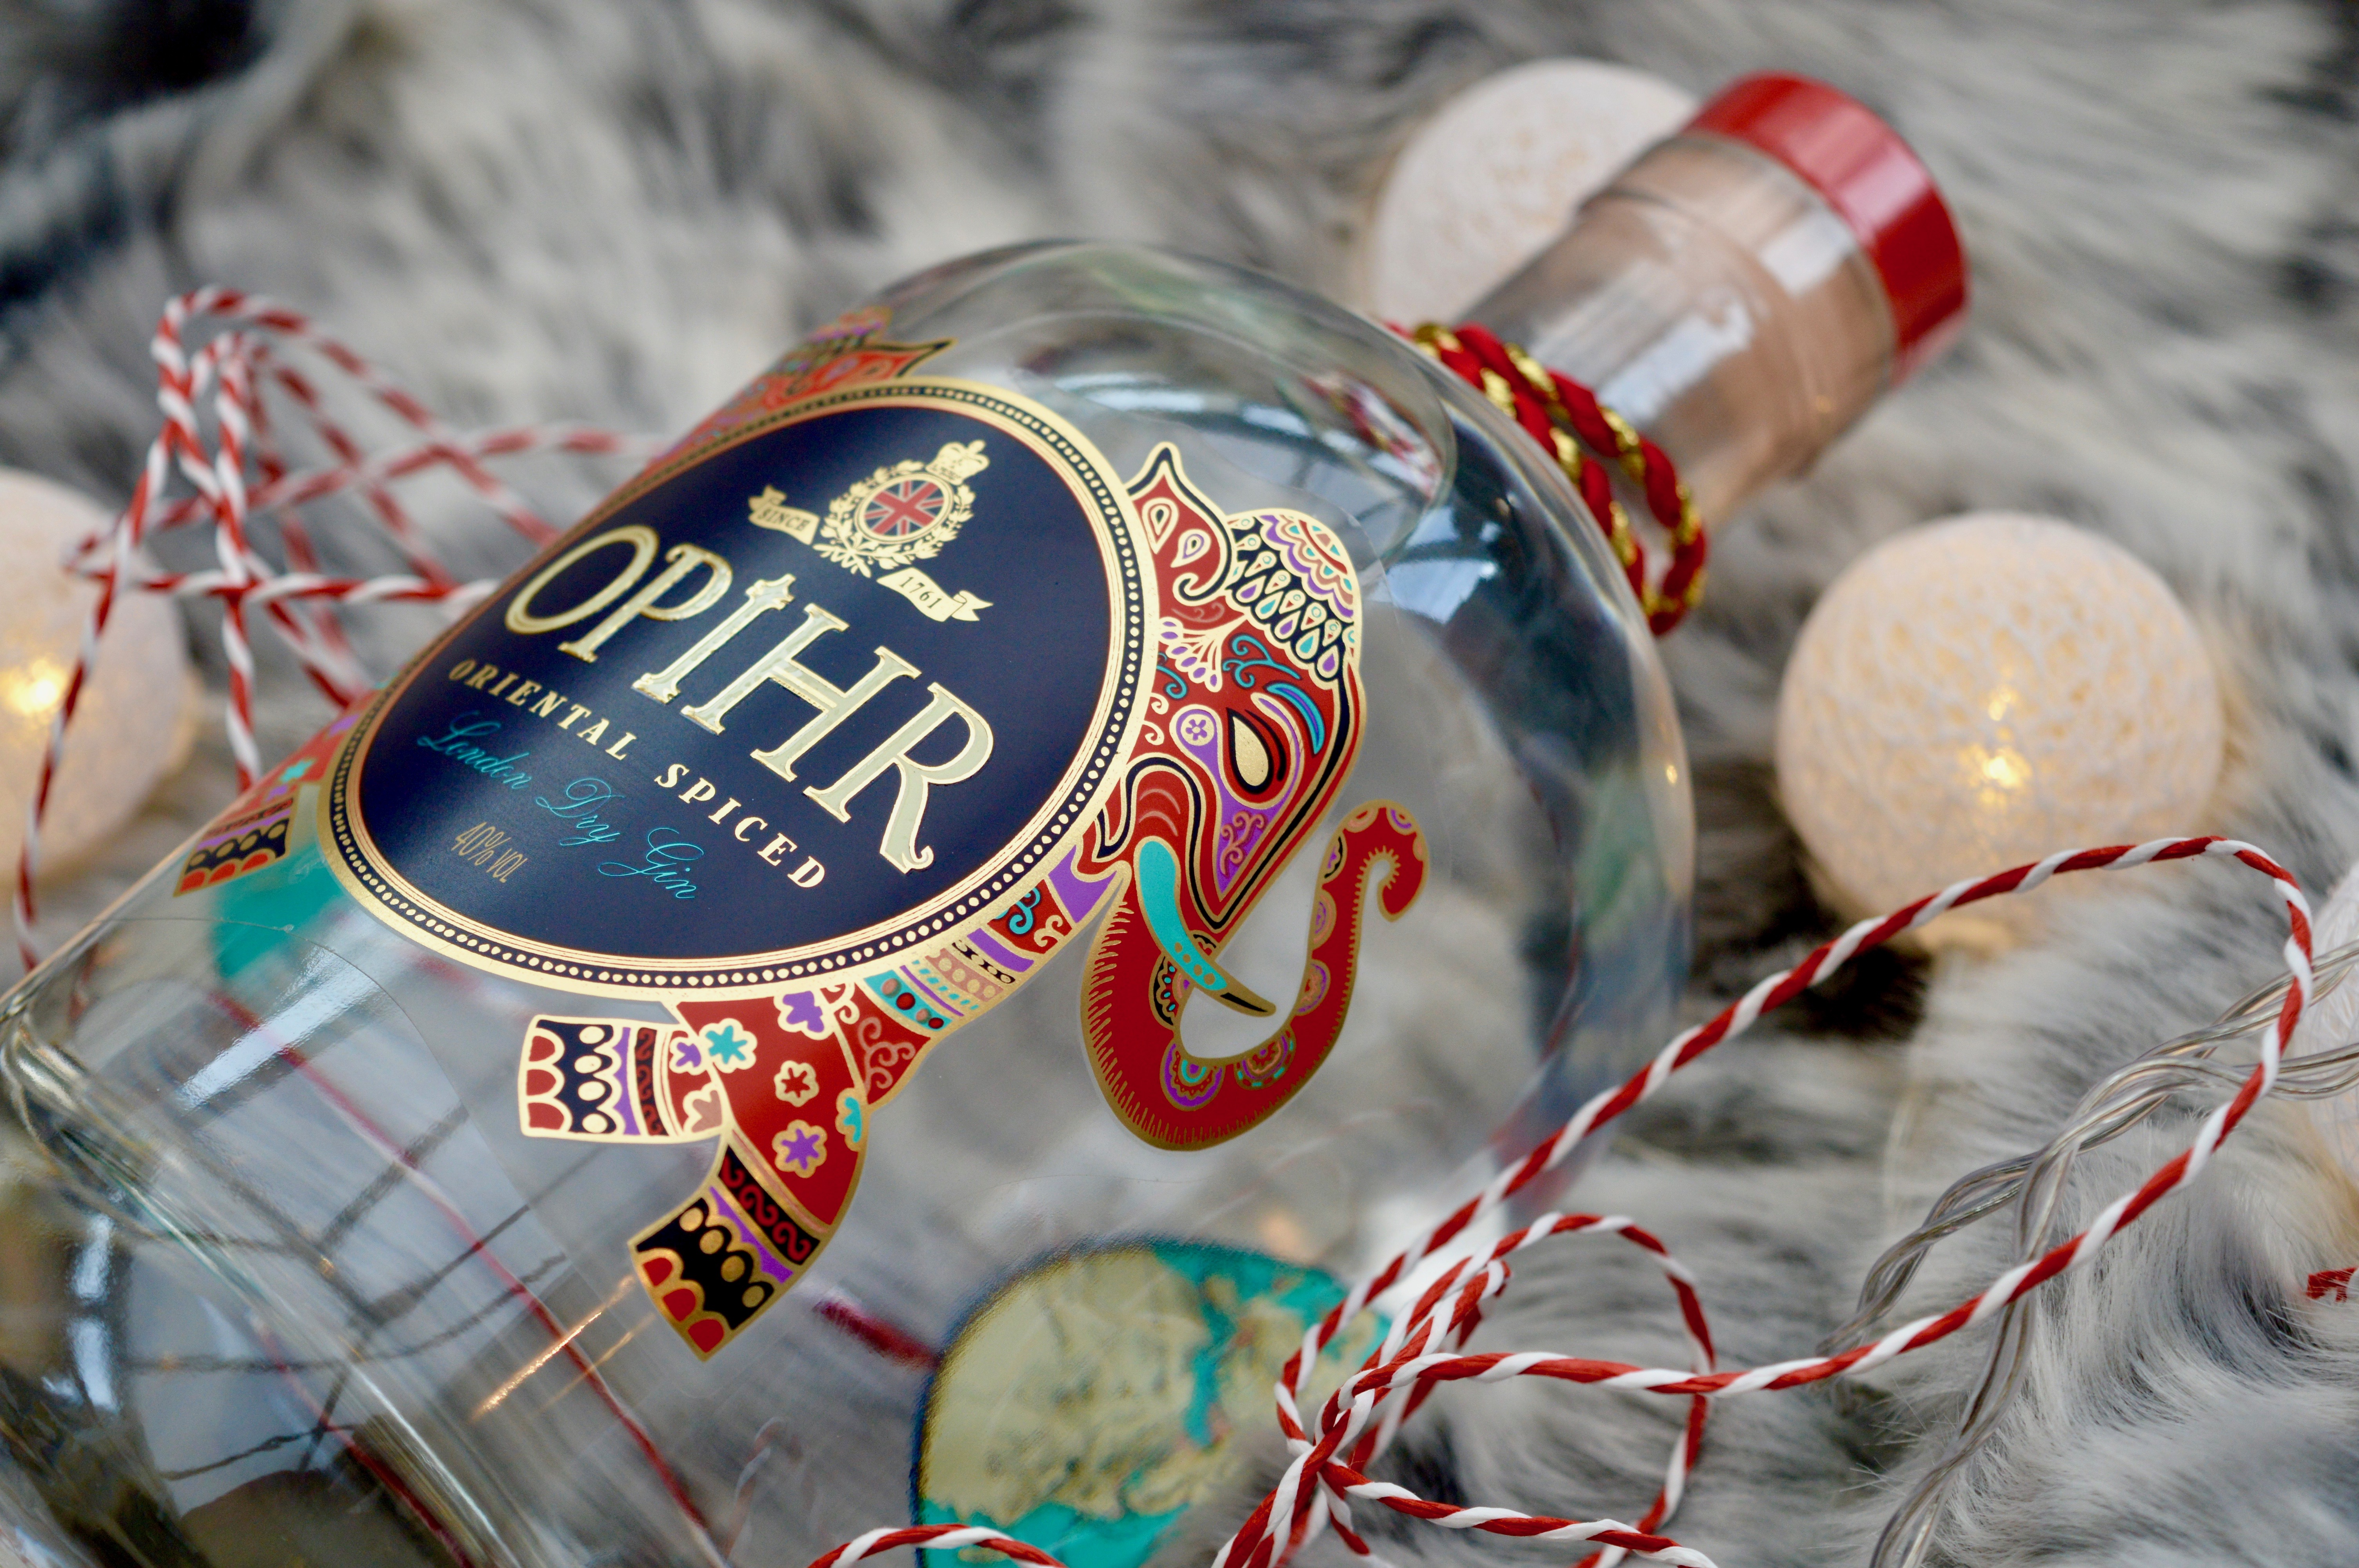 Opihr Gin   What to buy a gin lover   Christmas Gift Guide   Elle Blonde Luxury Lifestyle Destination Blog